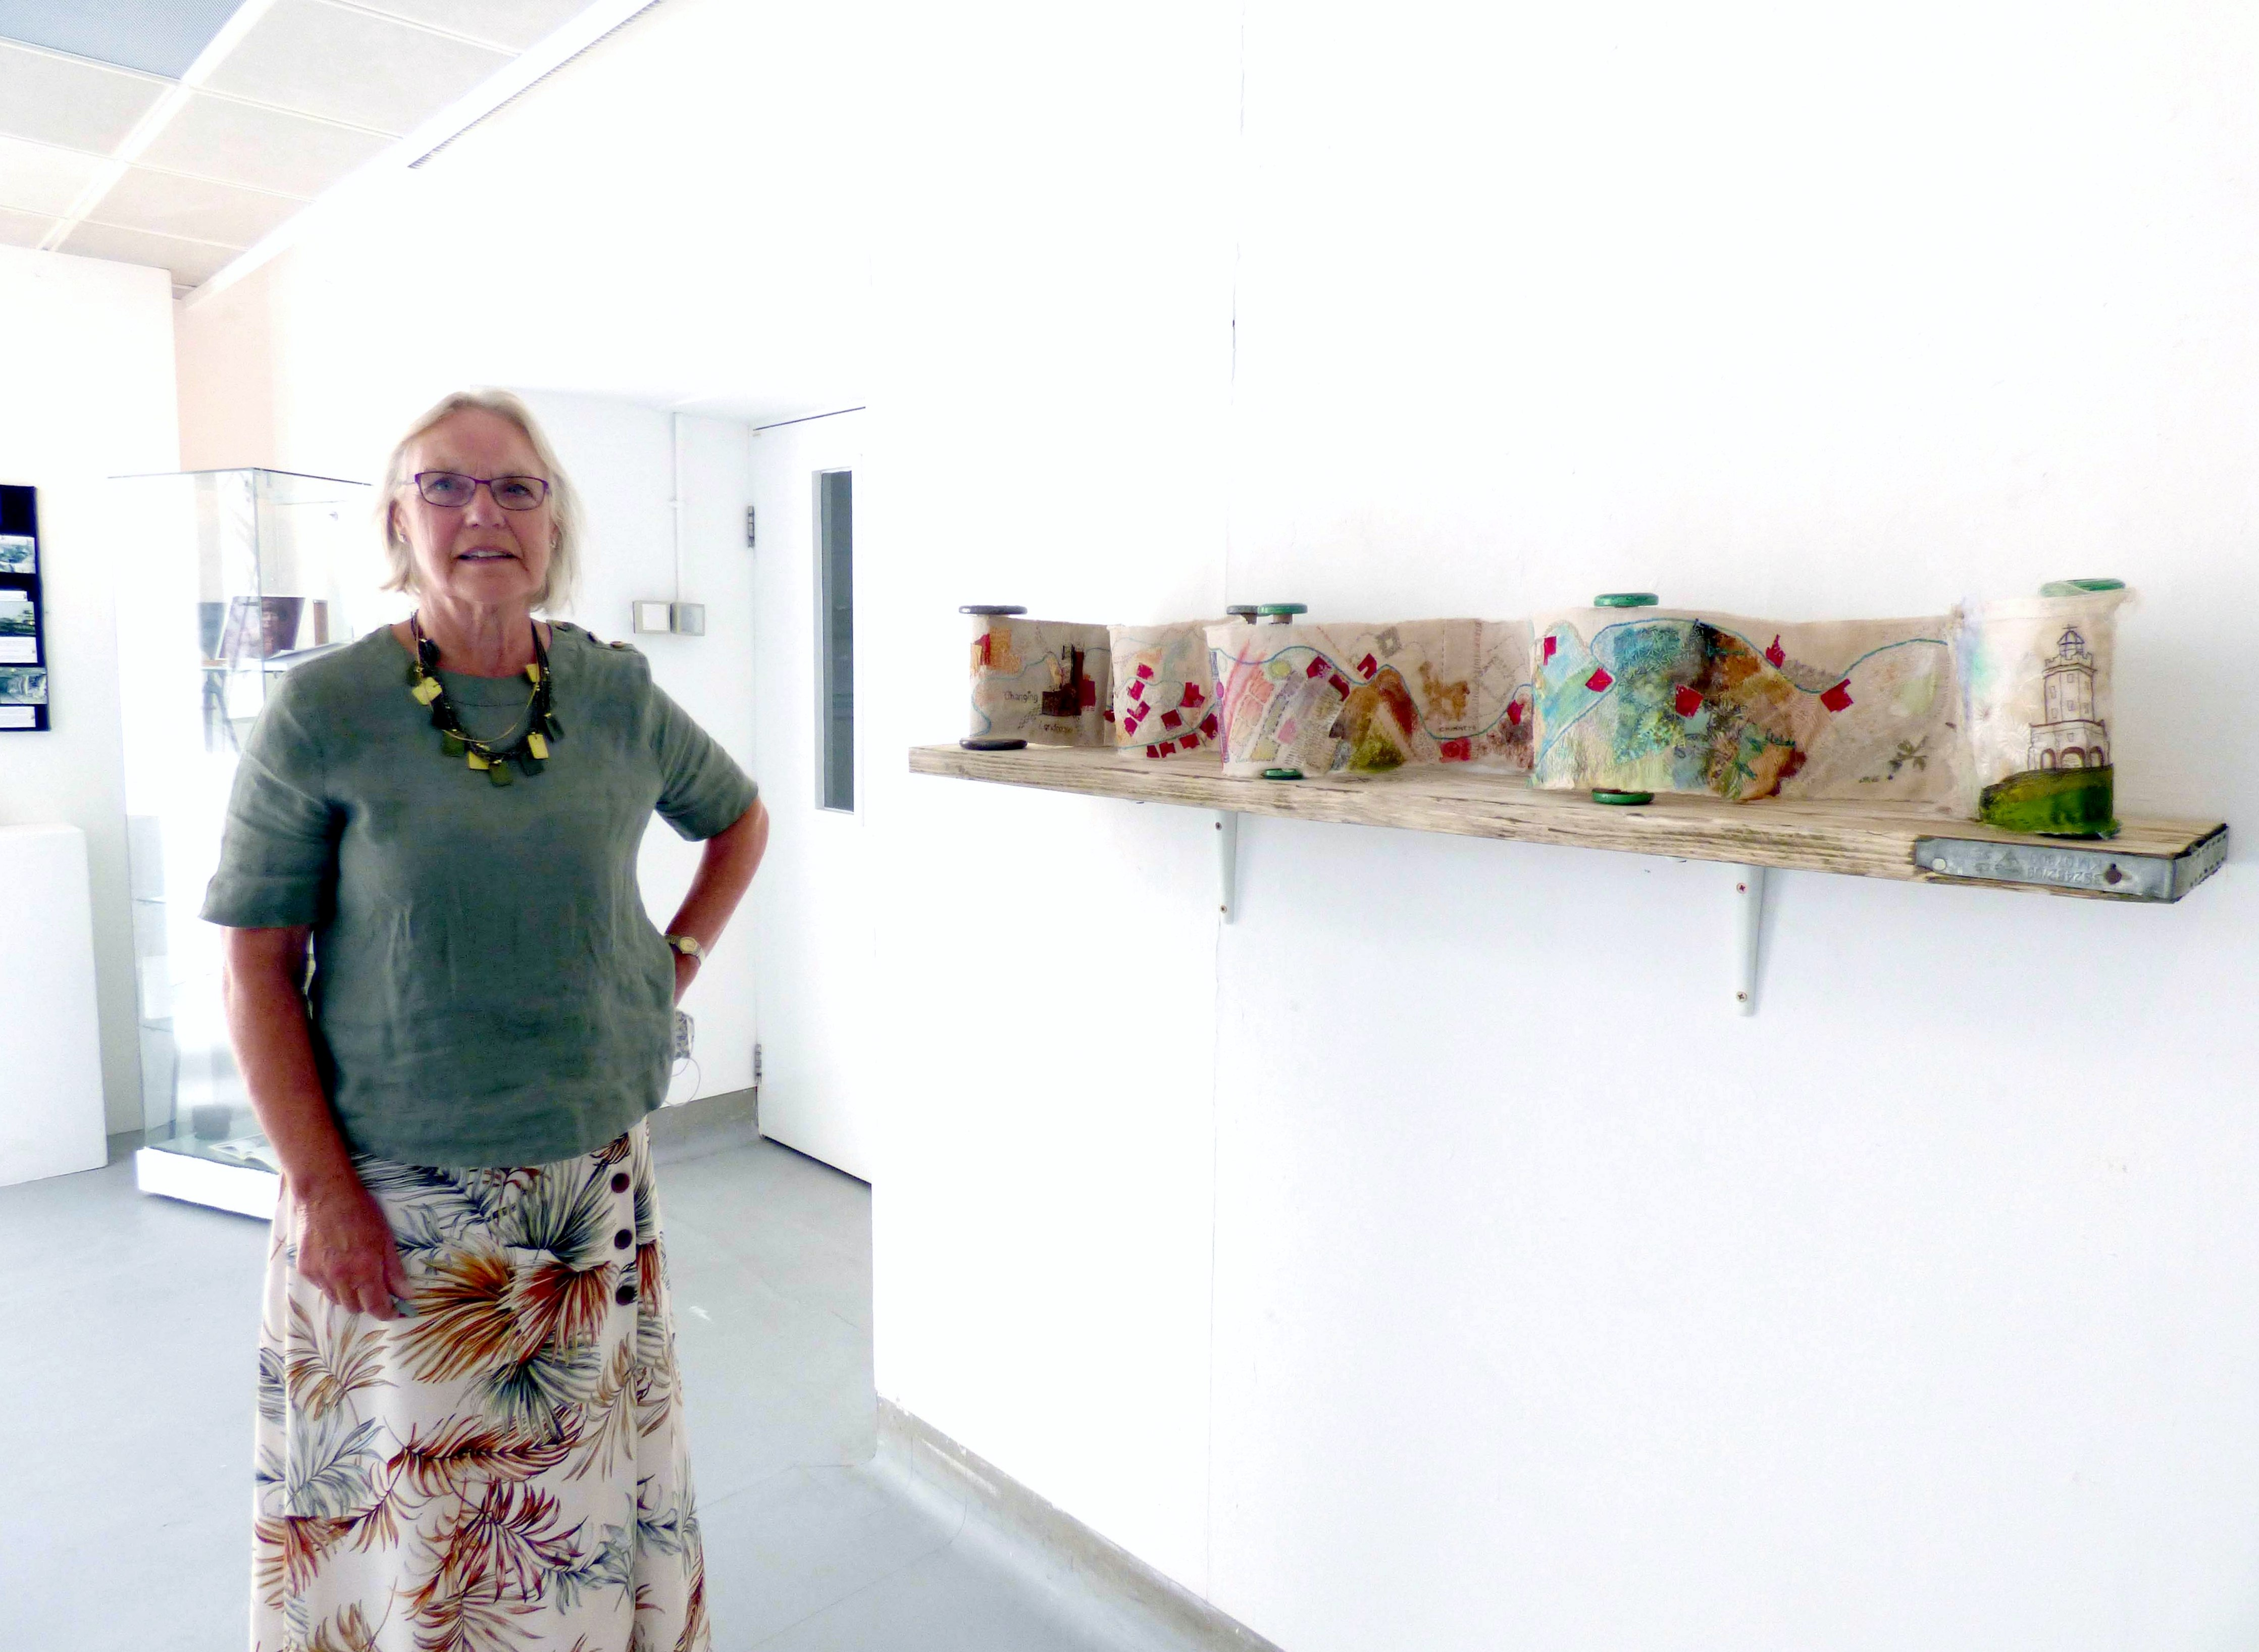 """CHANGING LANDSCAPE, Dunbar Mill, Blackburn by Sue Reeve, fabric collage, hand embroidery and old bobbins, """"Synergy"""" exhibition by Preston Threads, July 2021"""